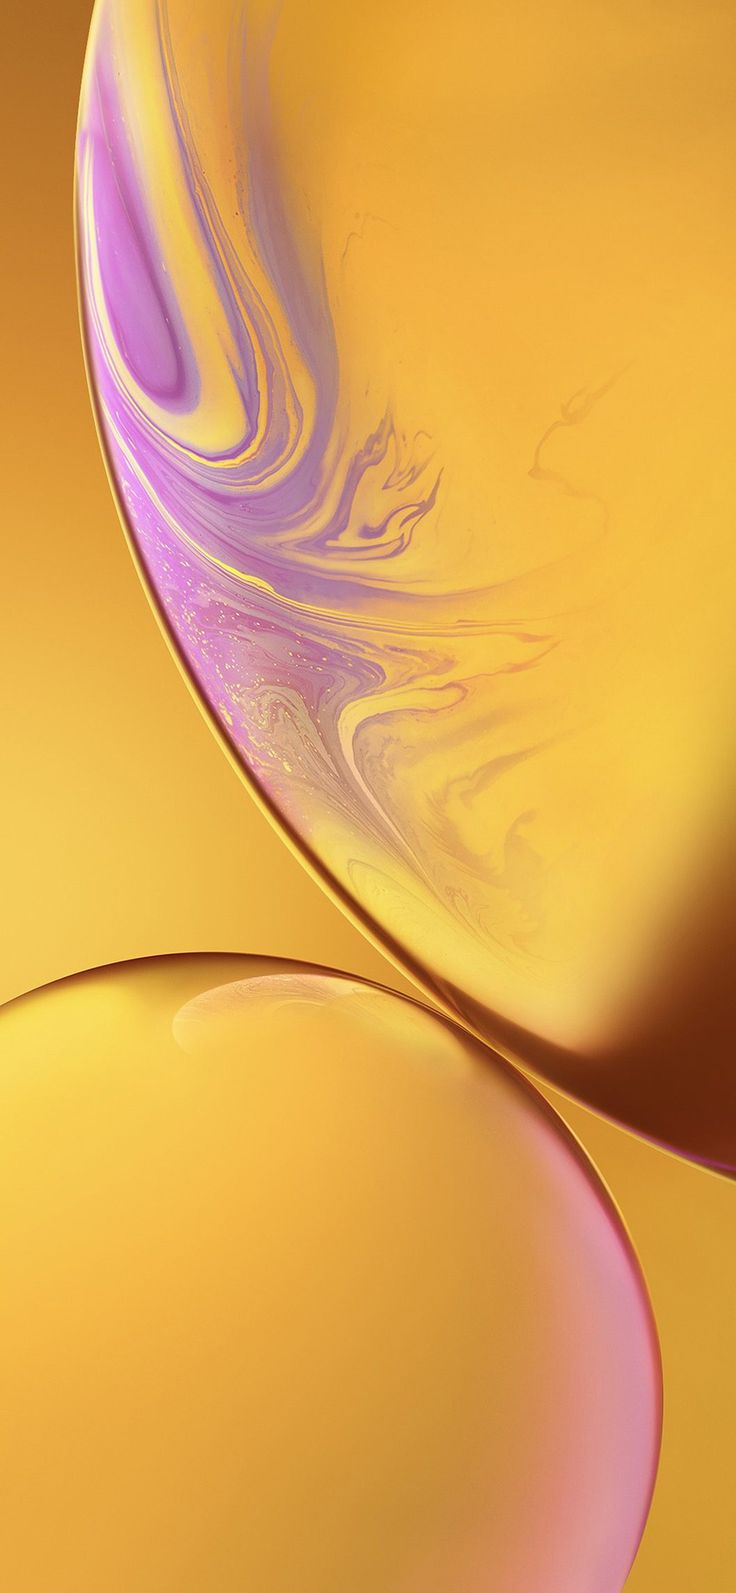 Iphone X Wallpaper Bg35 Iphone Xs Max Apple Official Art Yellow